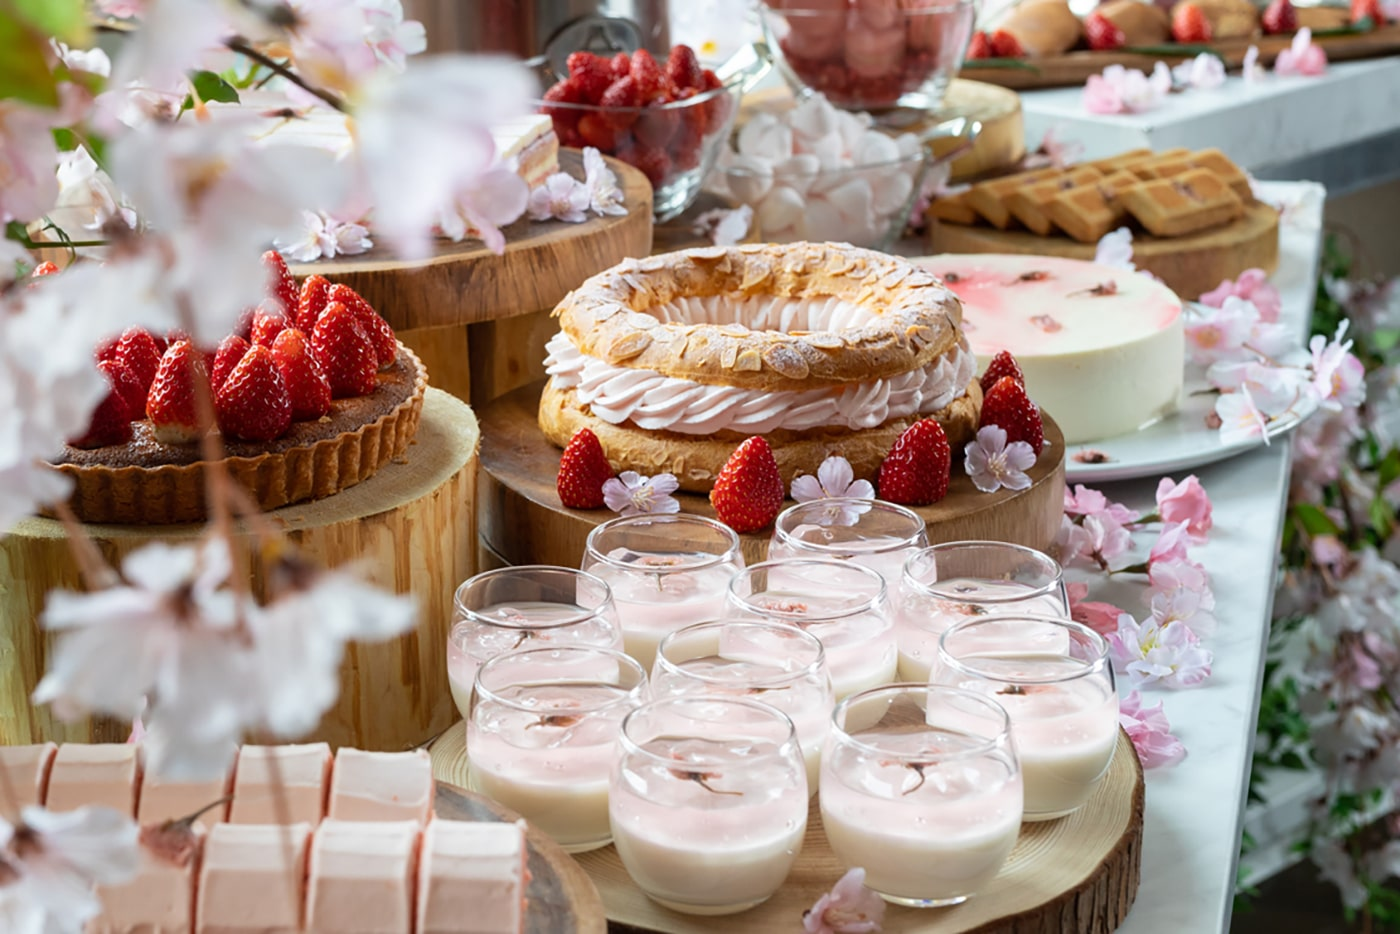 Sakura-Strawberry-Afternoon-Tea-Main-Image